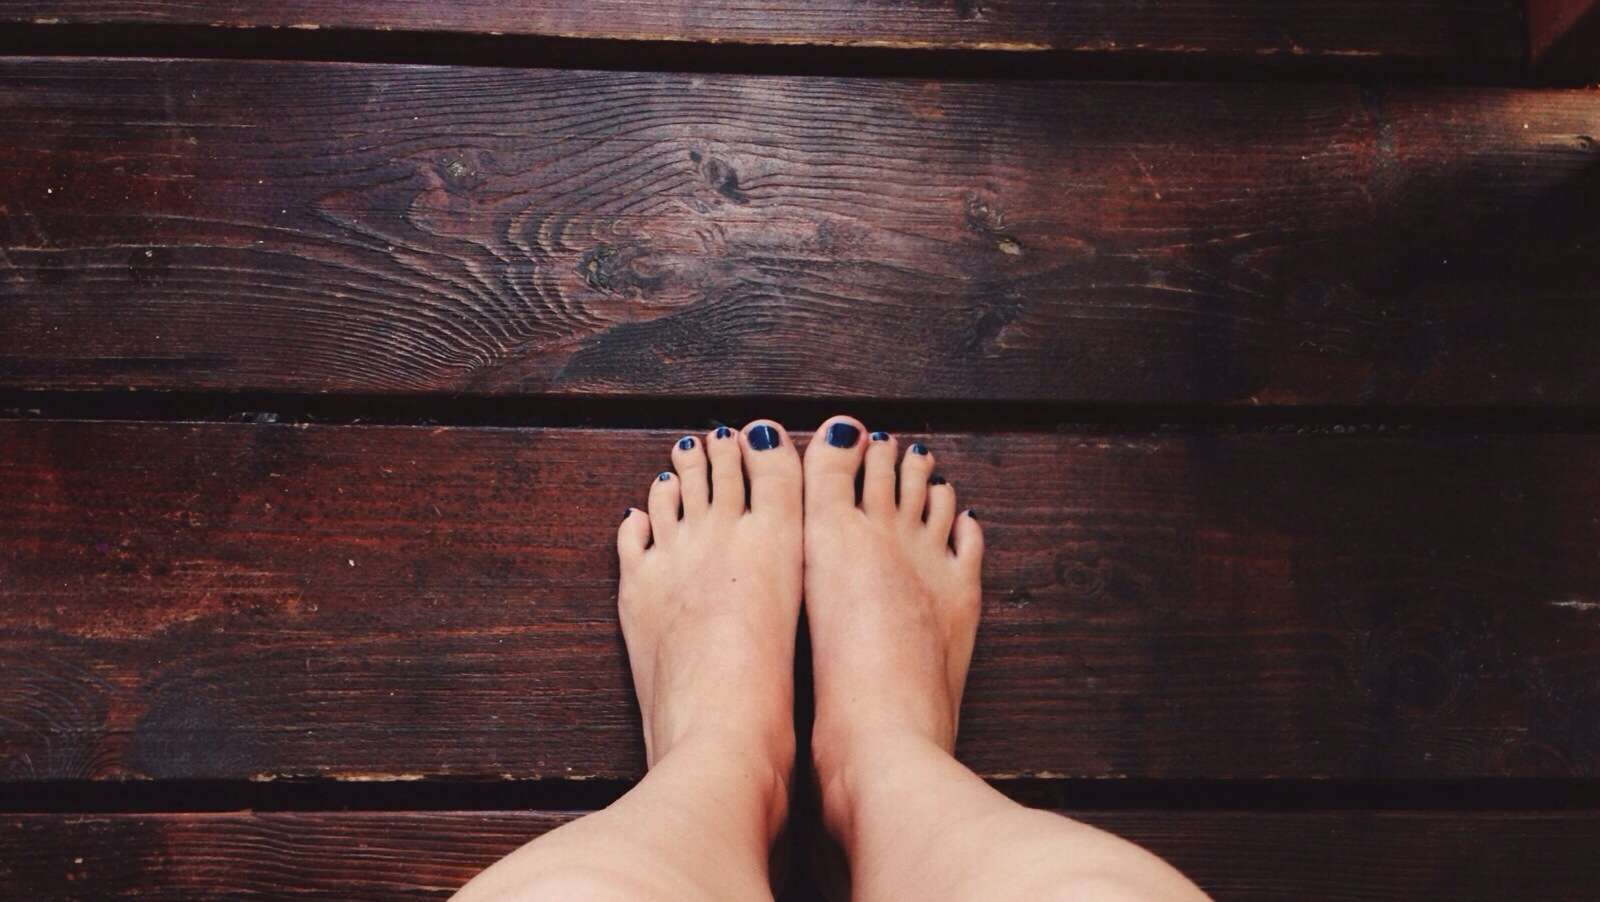 Feet with painted toenails on a wooden floor